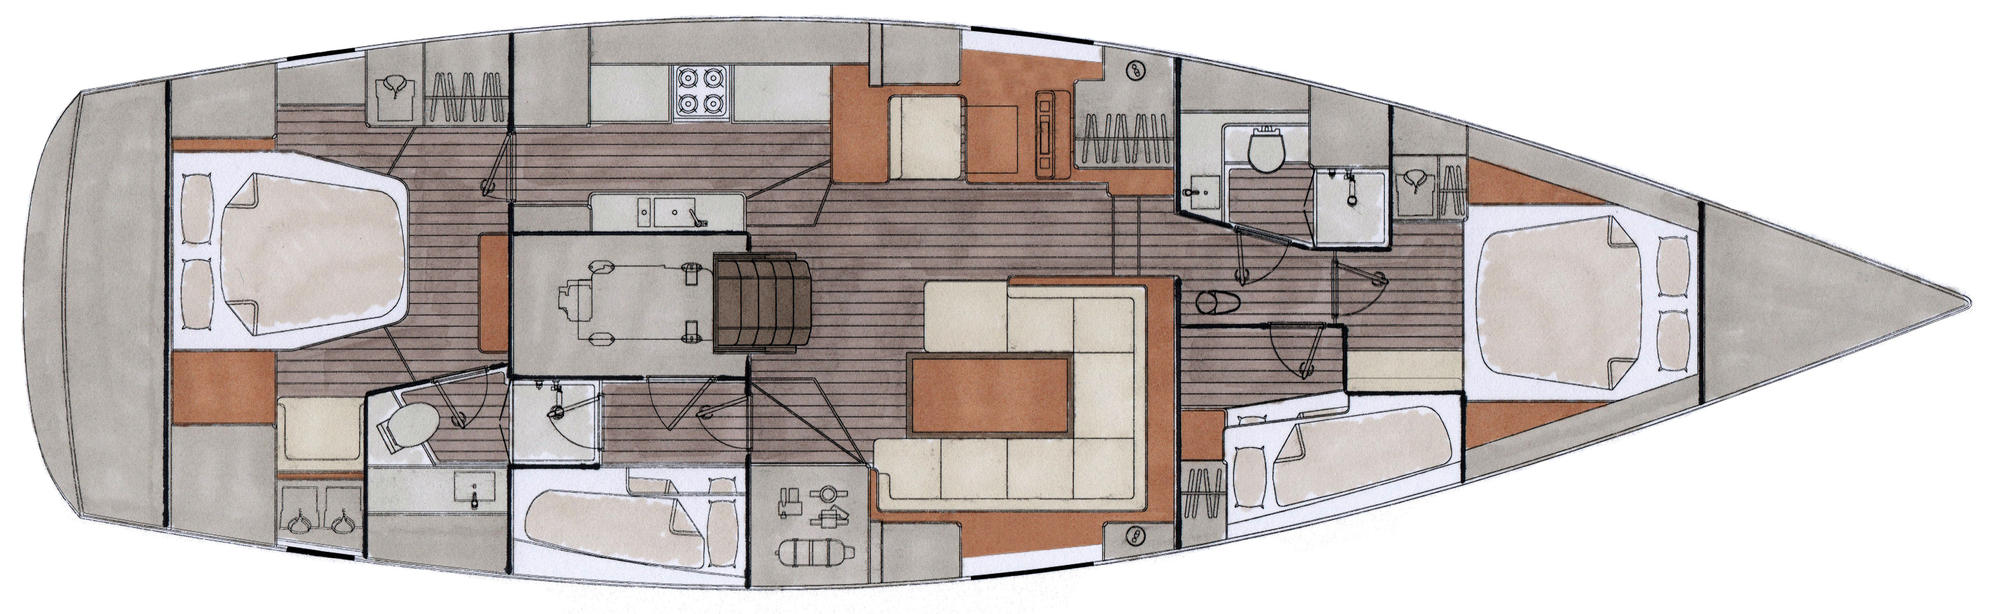 Conyplex Contest 57 CS - contest_57cs_interior_layout_c.jpg